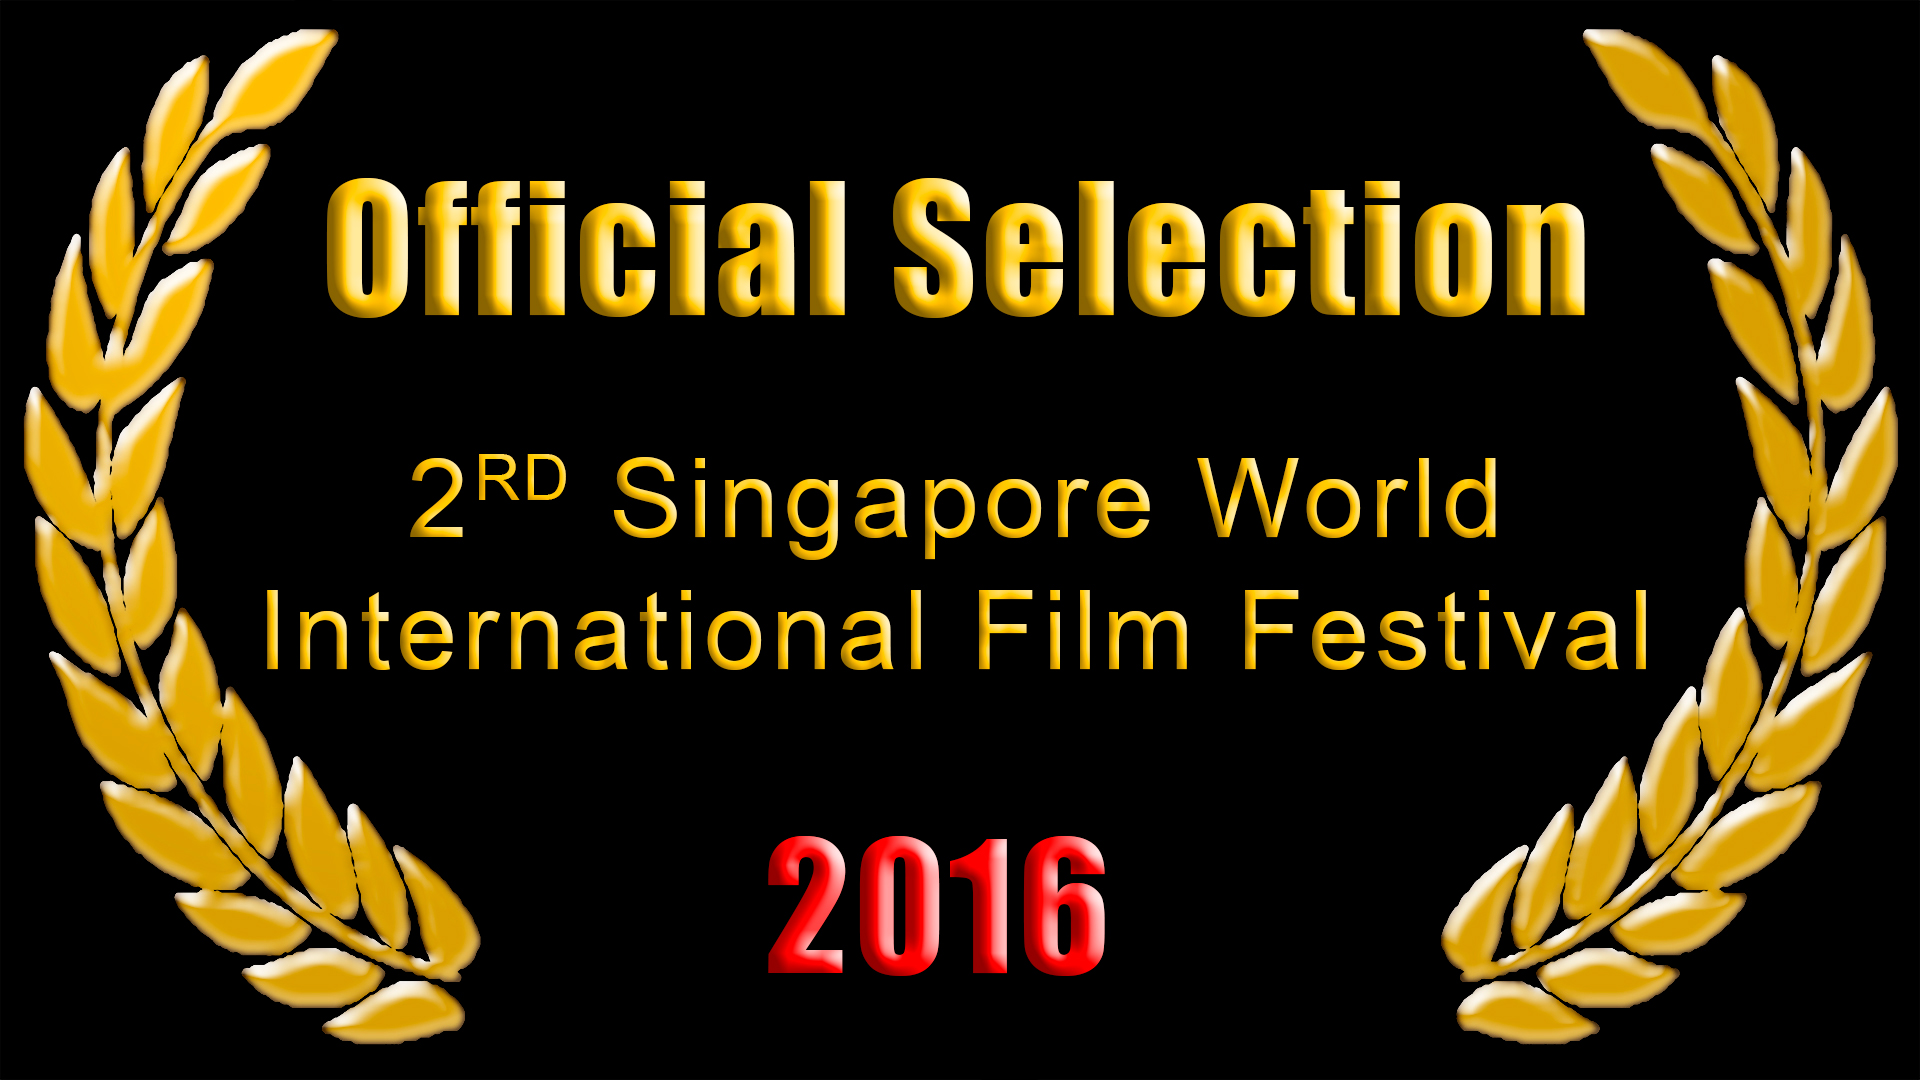 Singapore International Film Festival, 2016